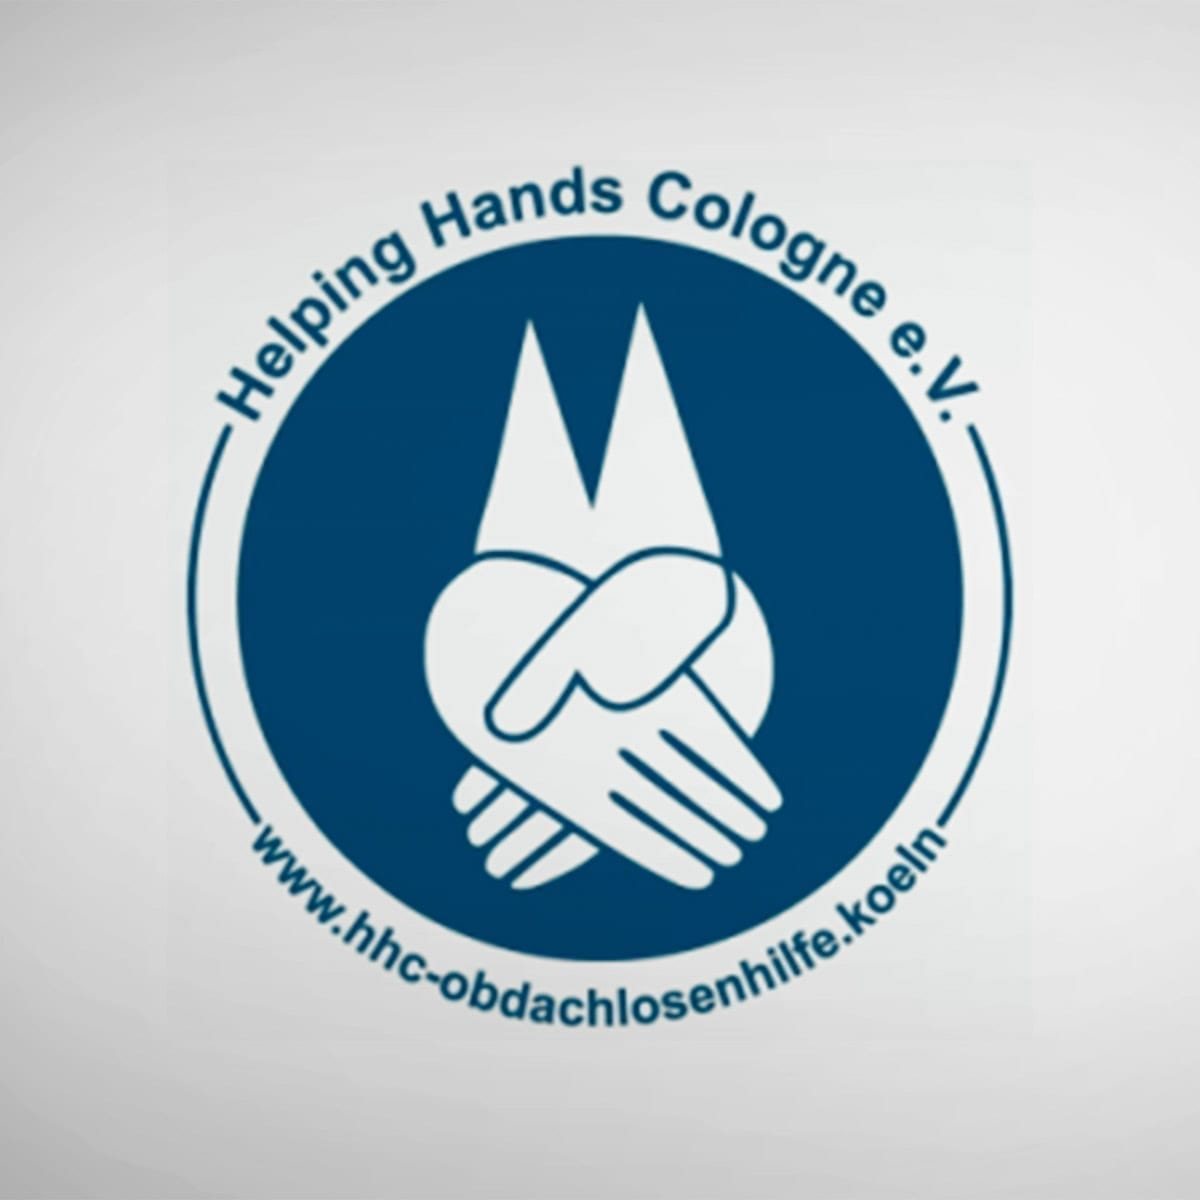 Helping Hands Cologne